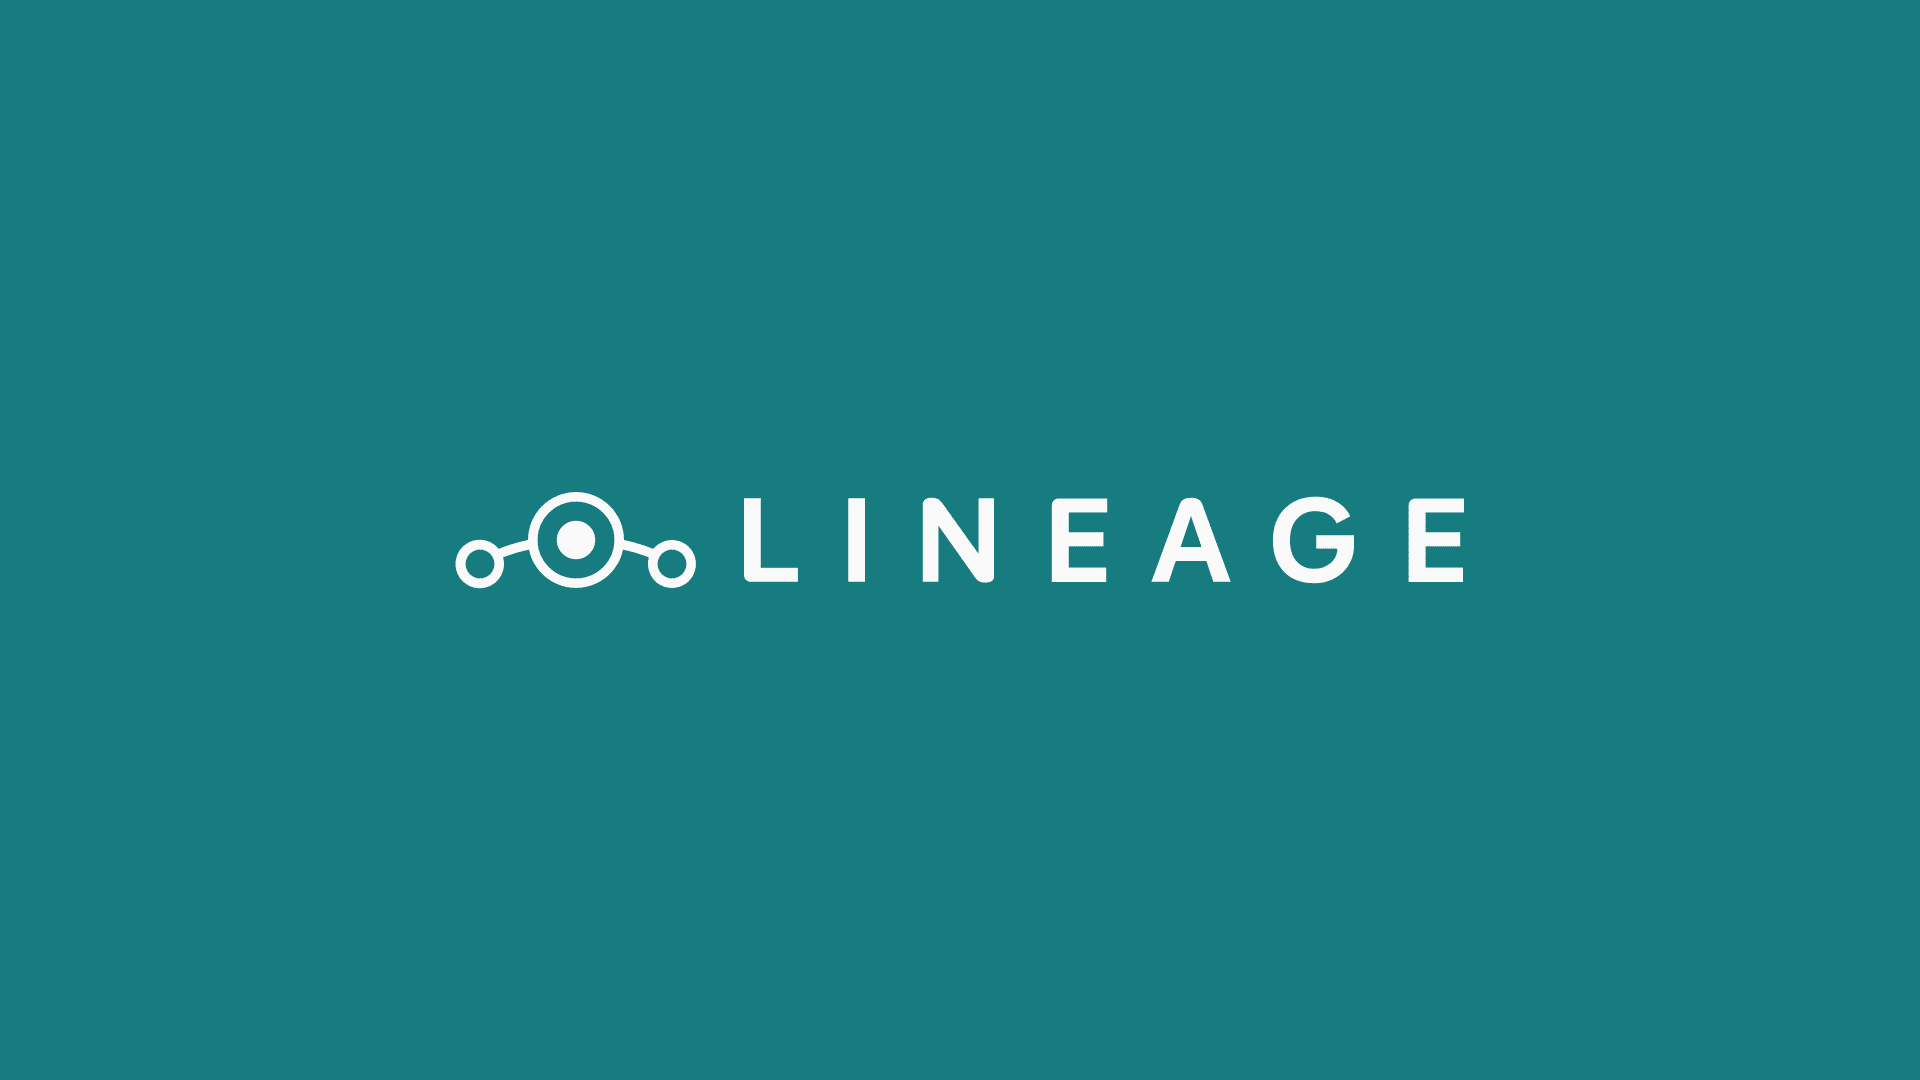 lineage-logo.png